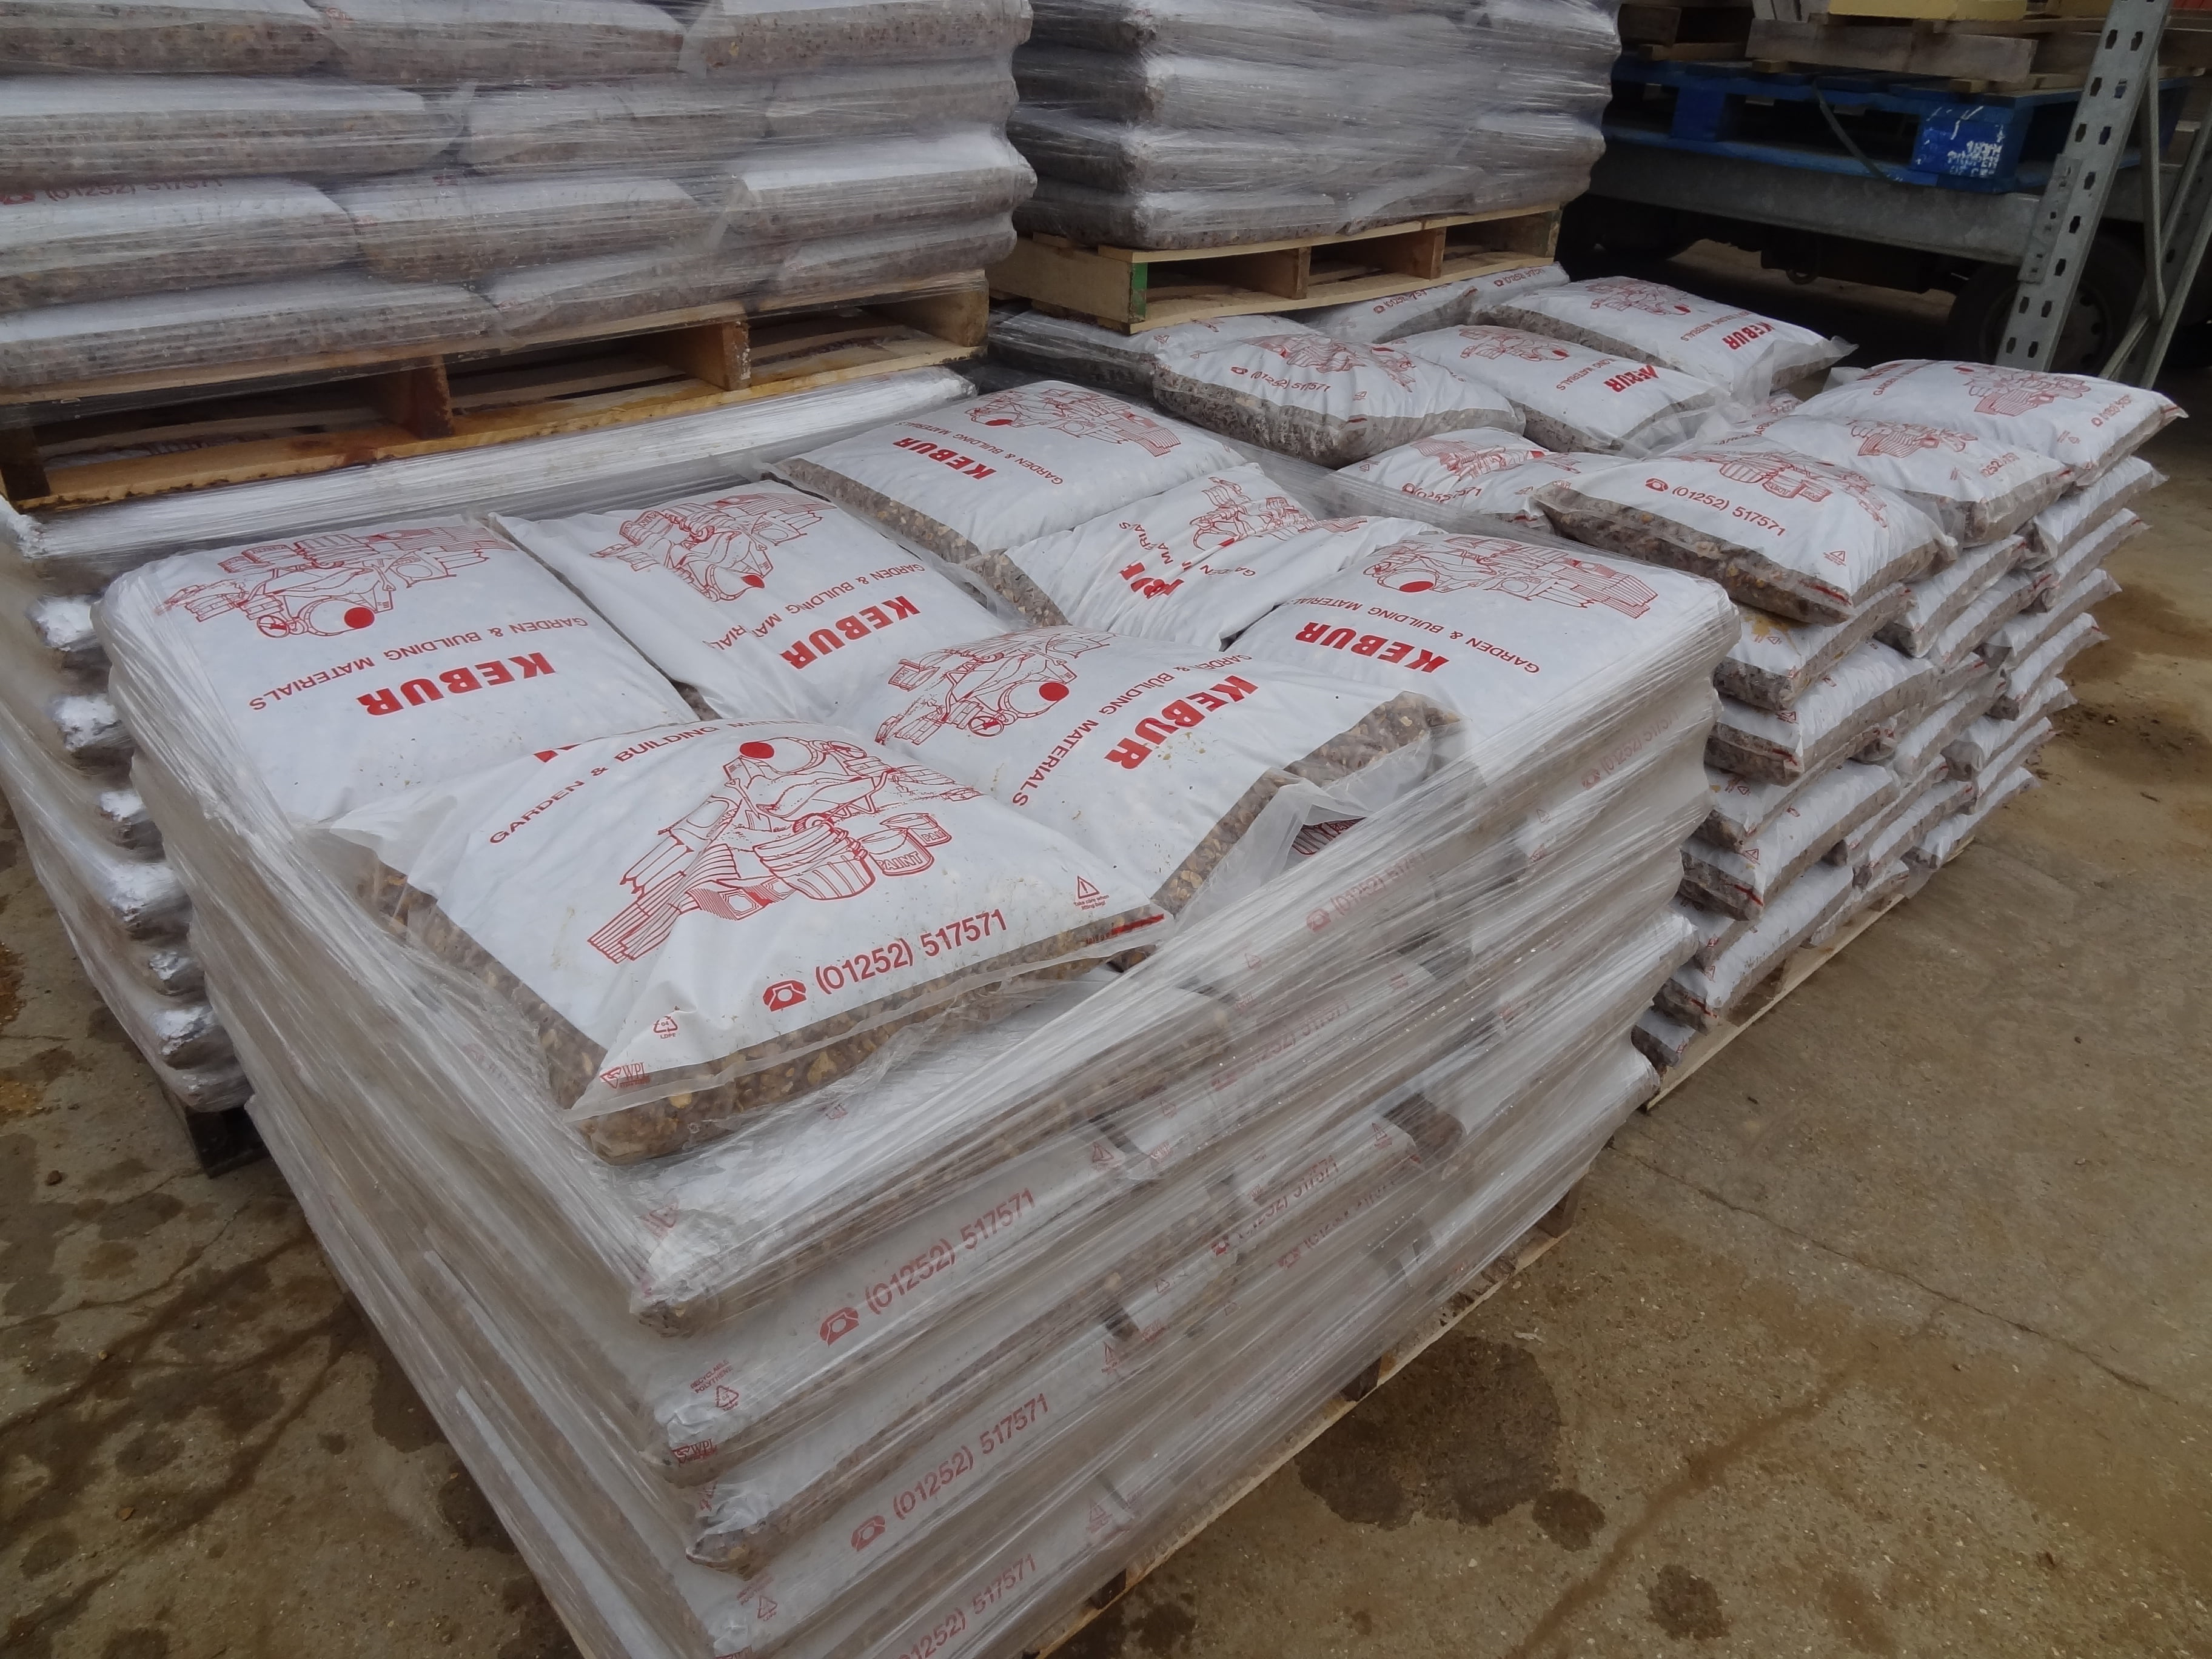 Polybags of Aggregates